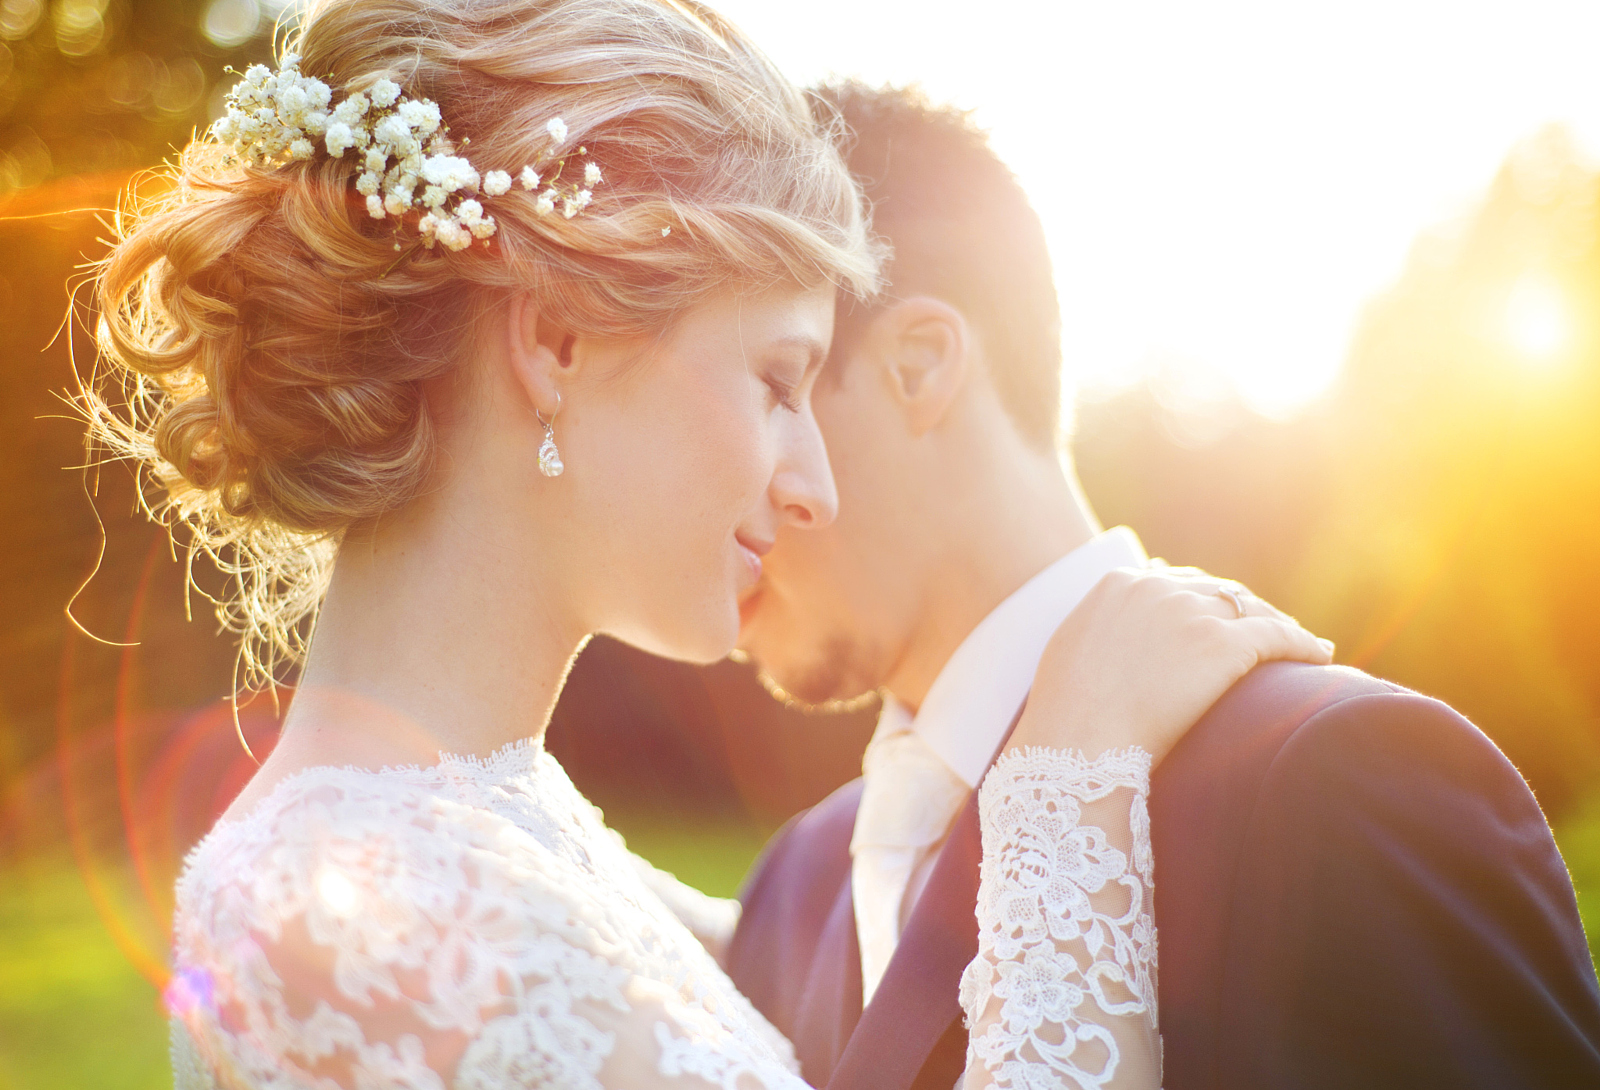 Simply Sellable: 4 Tips For Photographing Real Moments In Weddings